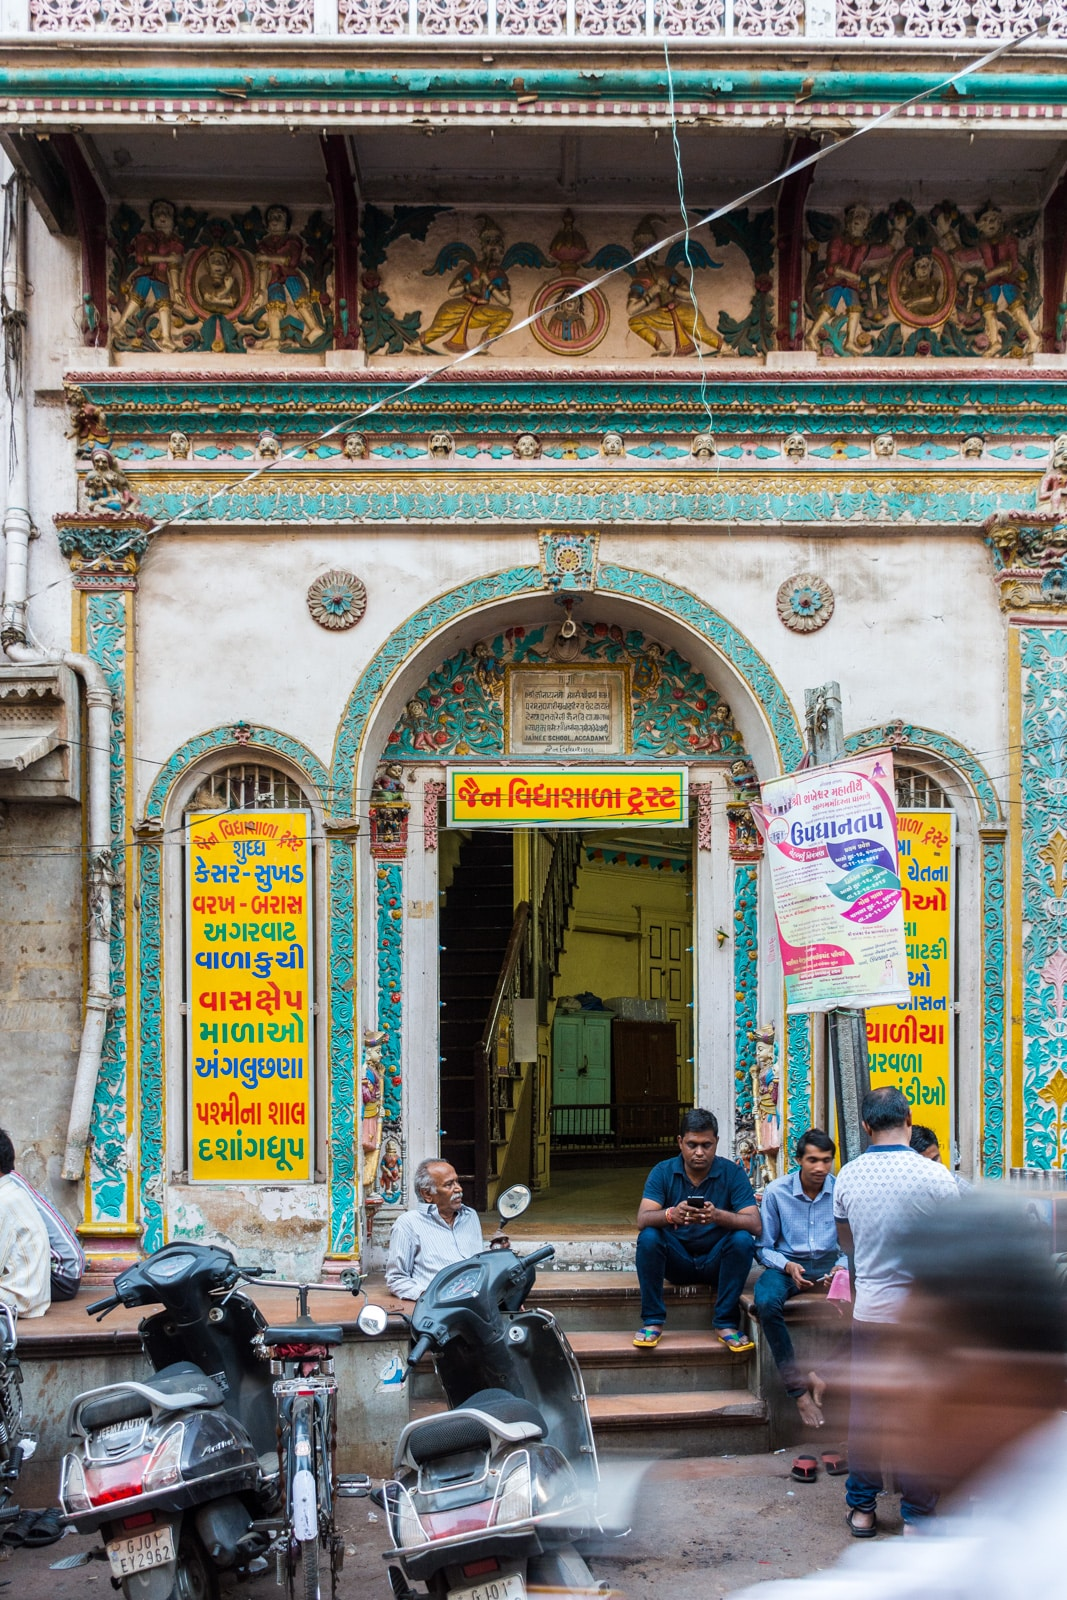 Men sitting outside a colorful traditional building in Ahmedabad